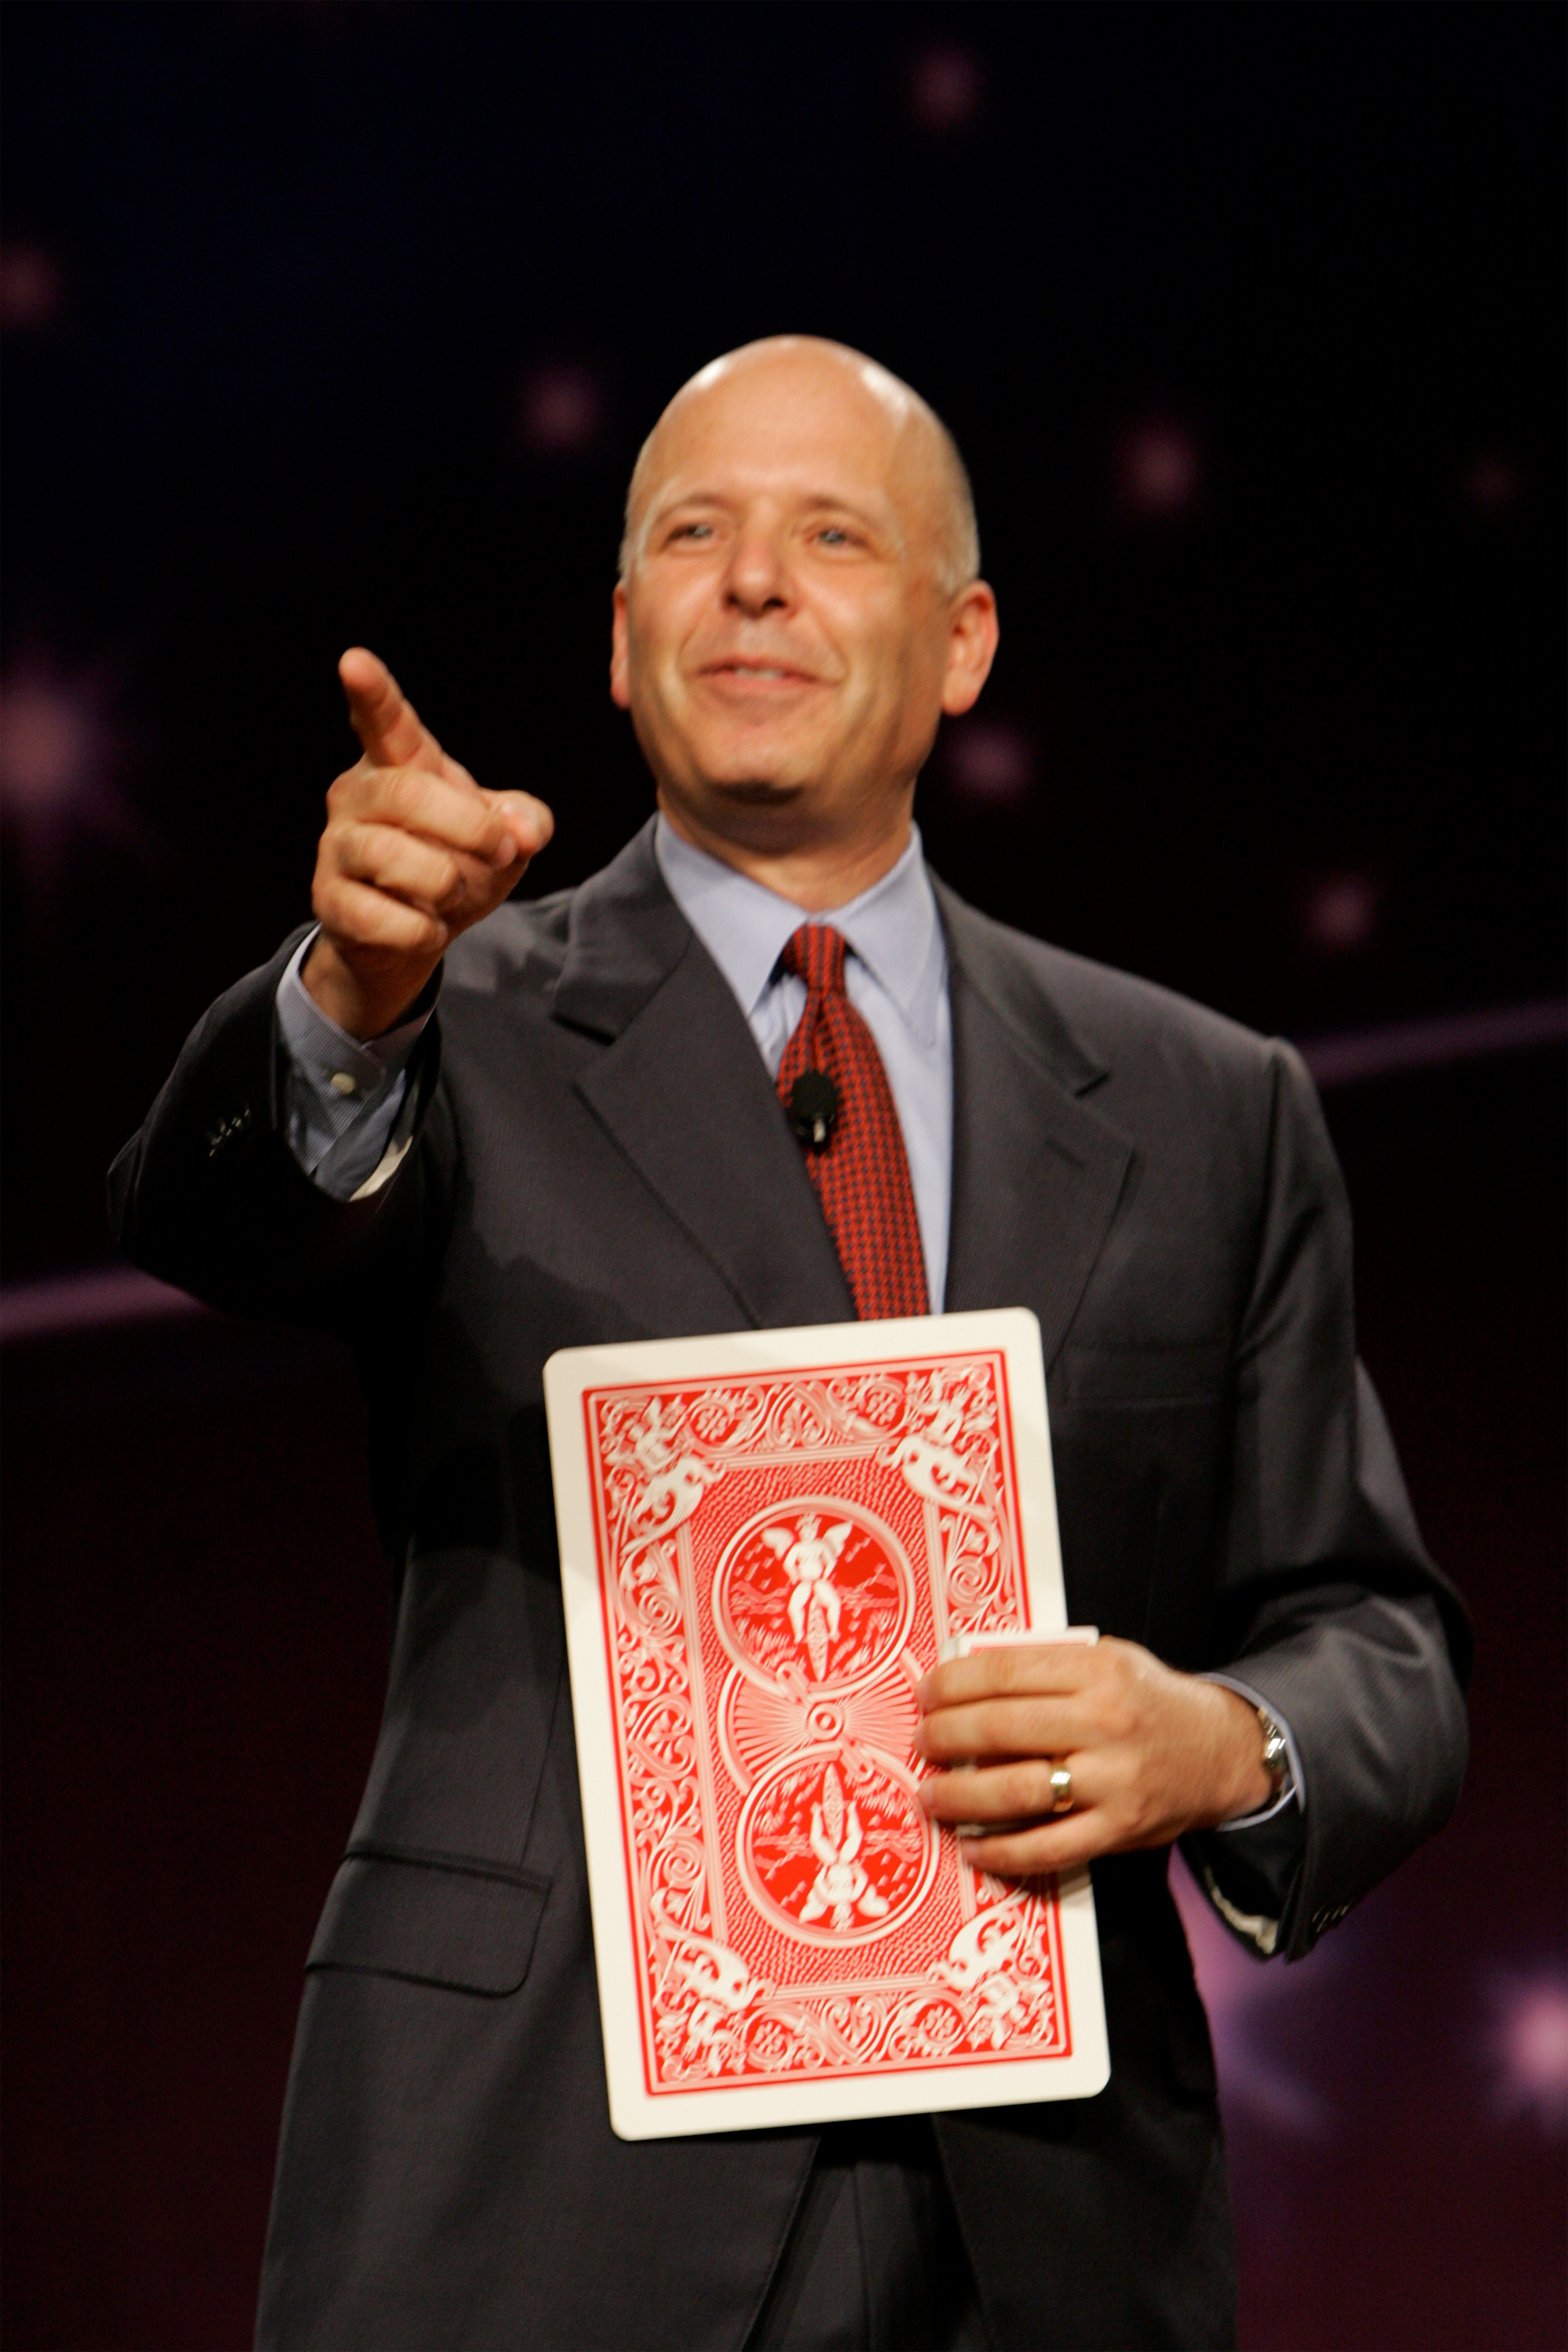 shep-hyken with card.jpg